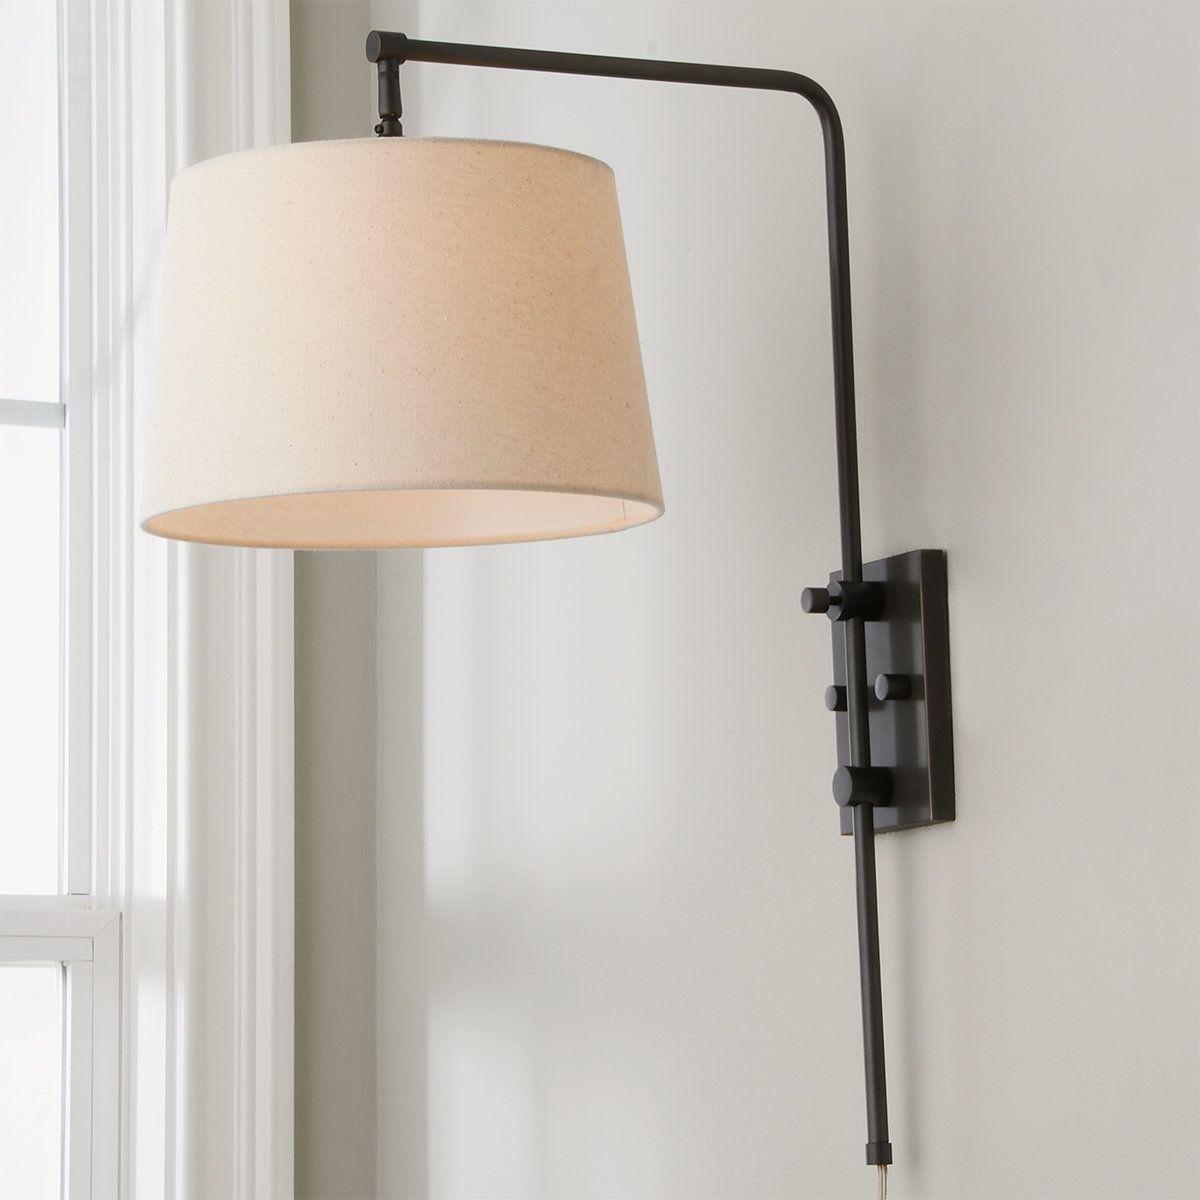 Down Bridge Shade Wall Light In 2021 Plug In Wall Sconce Swing Arm Wall Lamps Wall Lamp Shades Wall sconce lamp shade